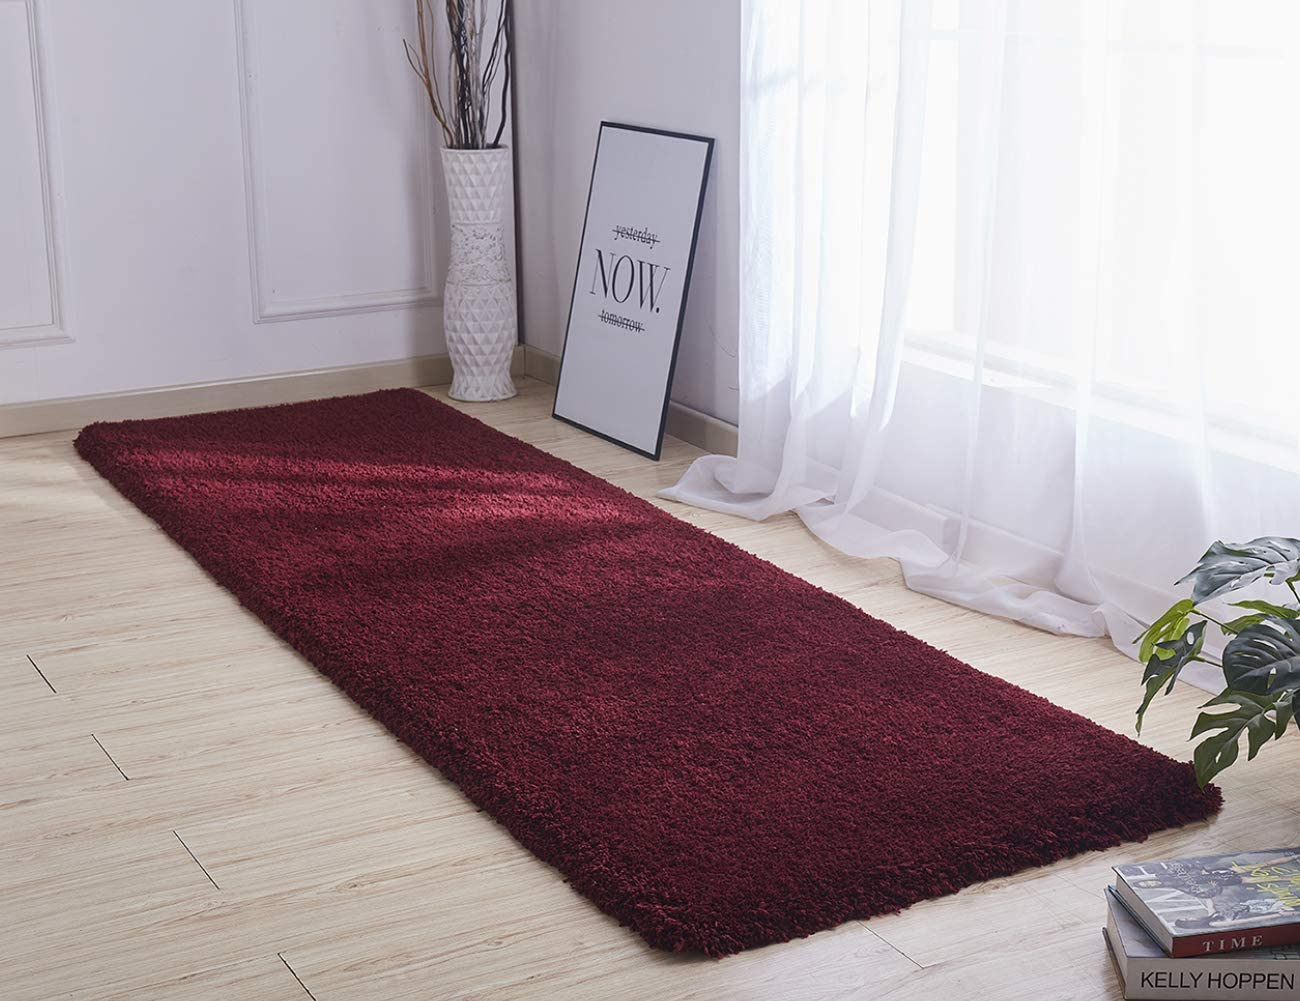 Picturesque Shaggy Rug Hallway Rug 50mm Thick Fluffy Soft Non-Slip Carpet for Living Room Bedroom Wine red,77x275cm 2.5 x 9